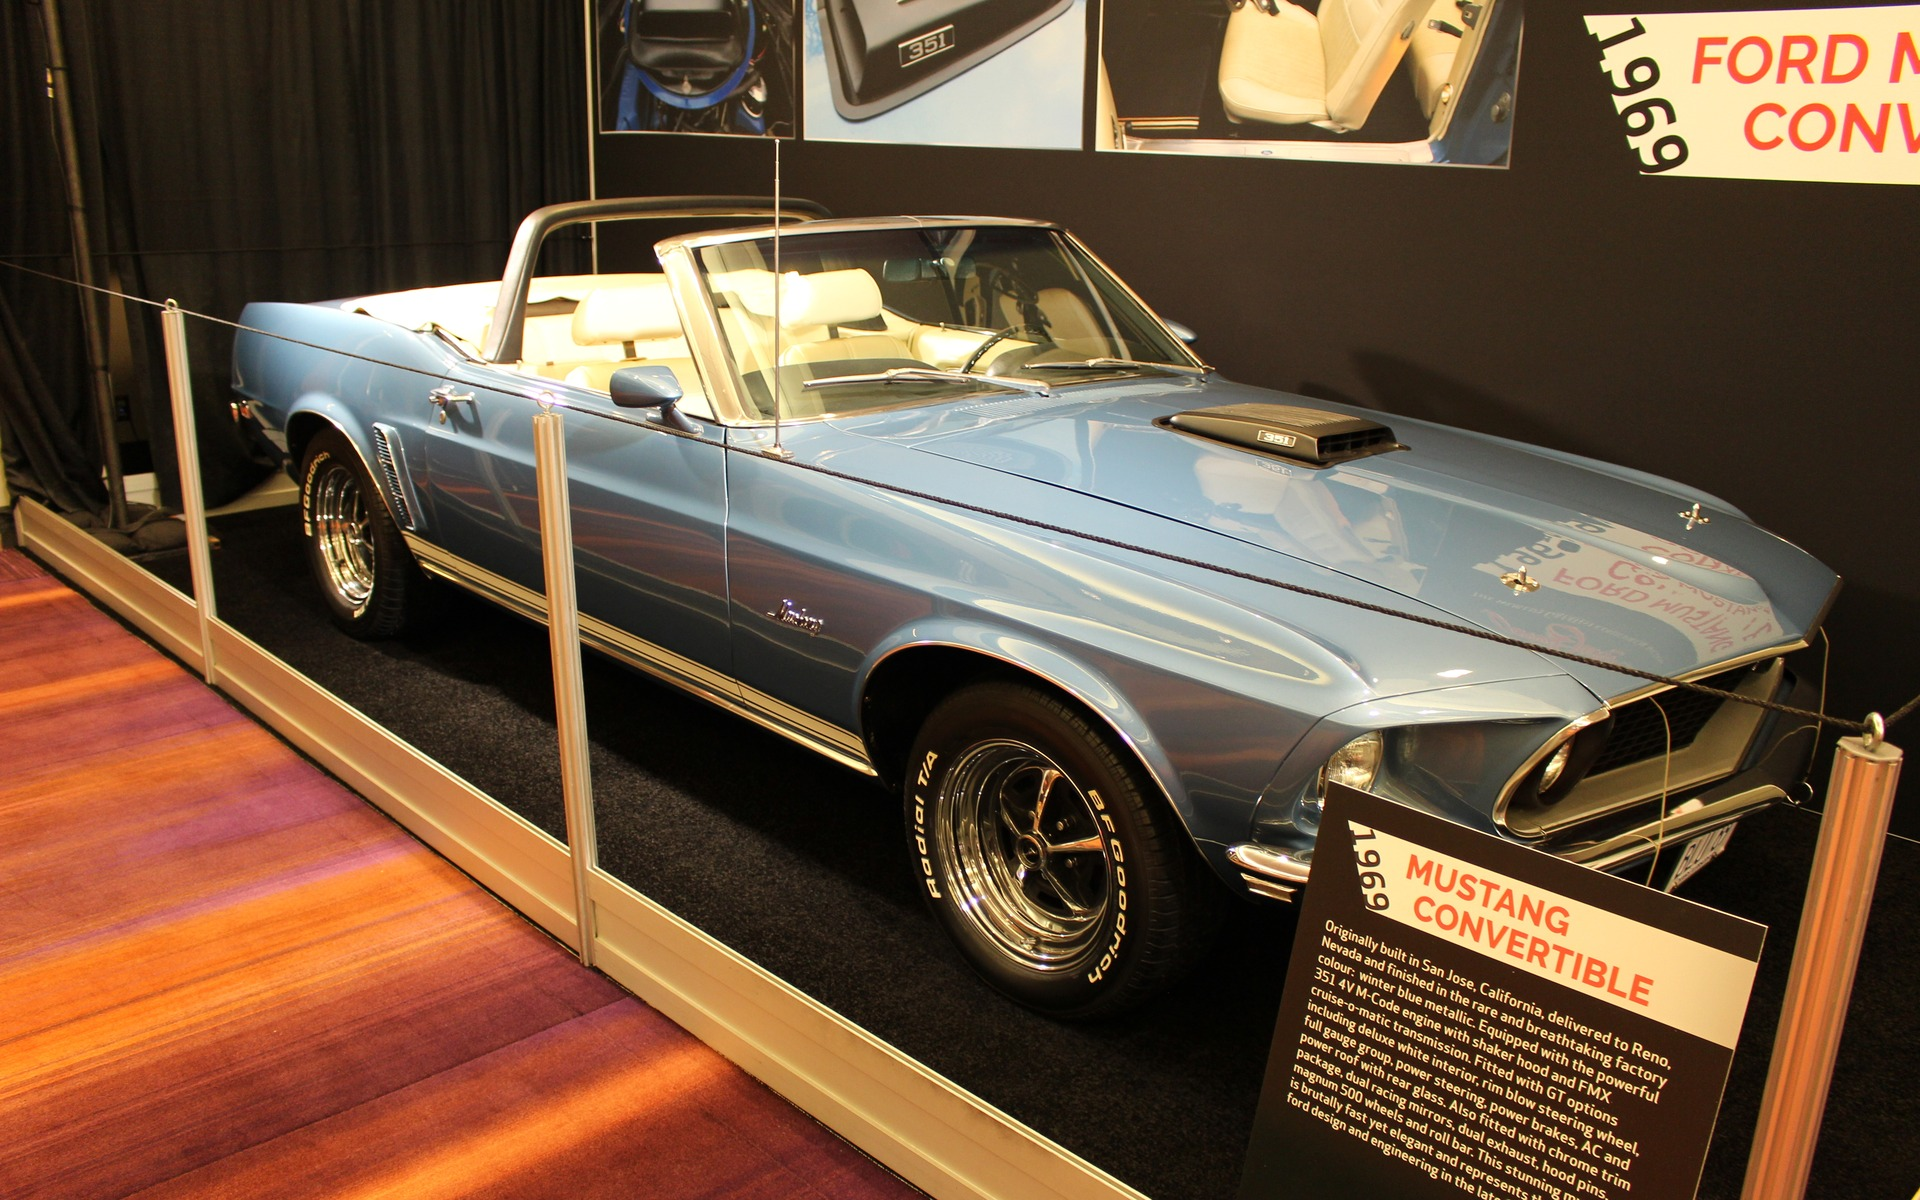 <p>1969 Ford Mustang Convertible</p>